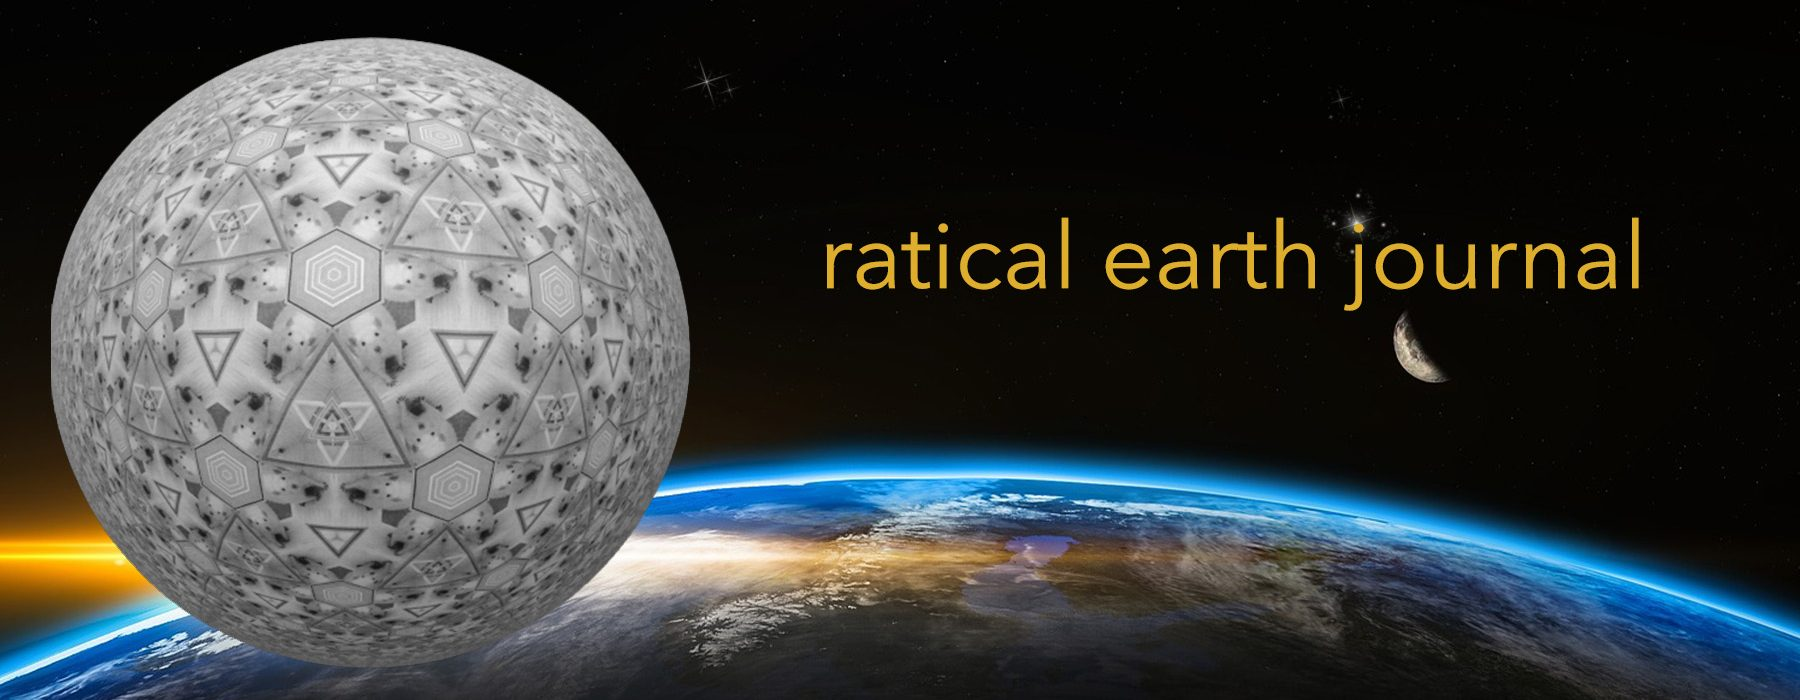 ratical earth journal